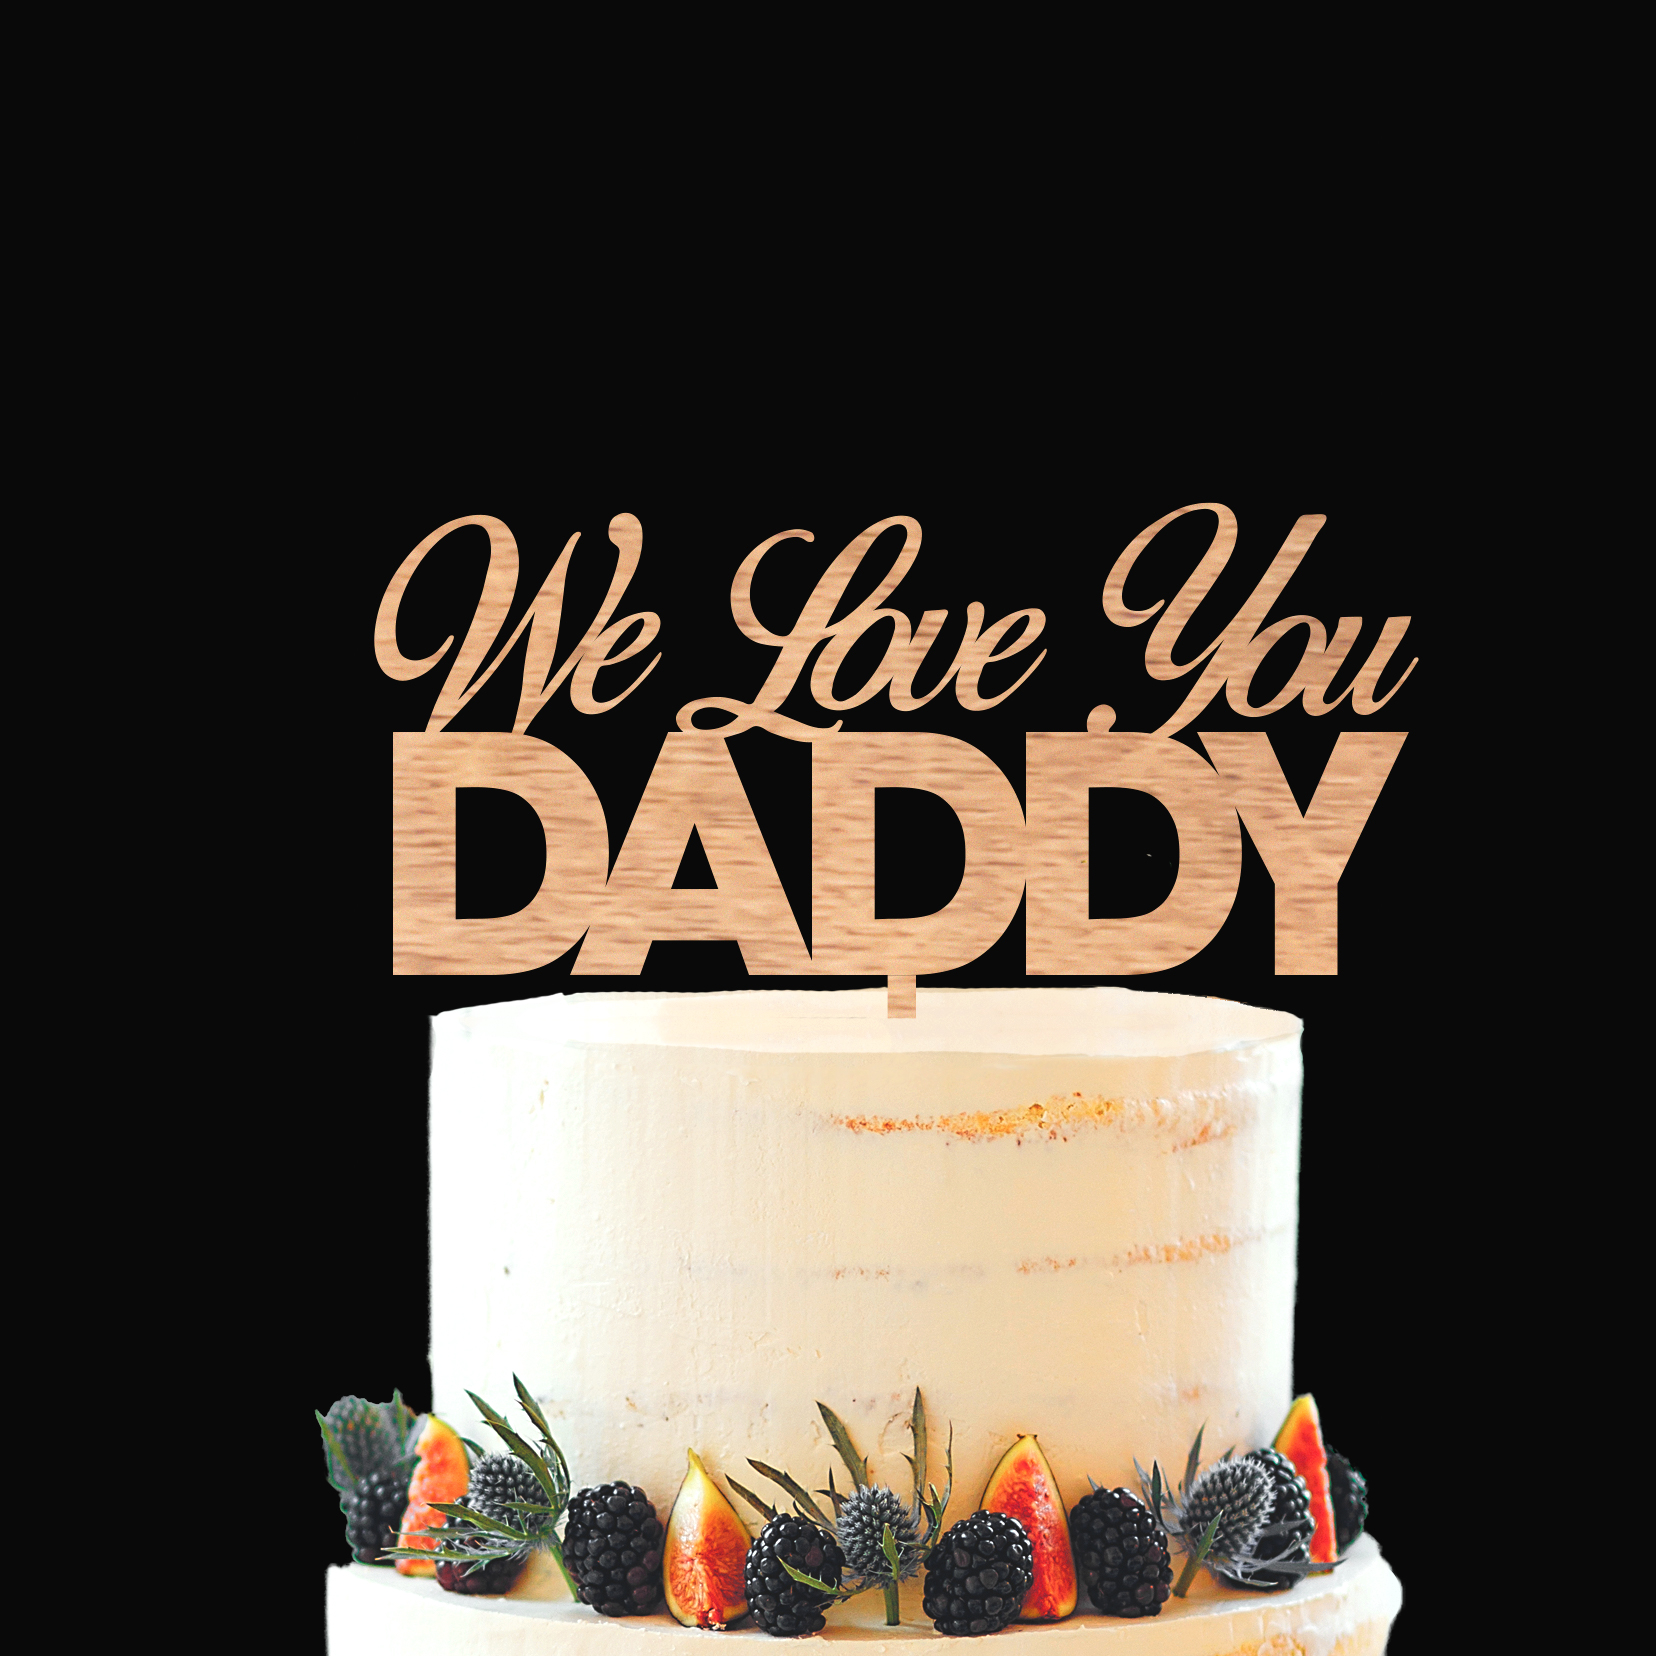 We Love You Daddy Cake Topper Personalized By Kate